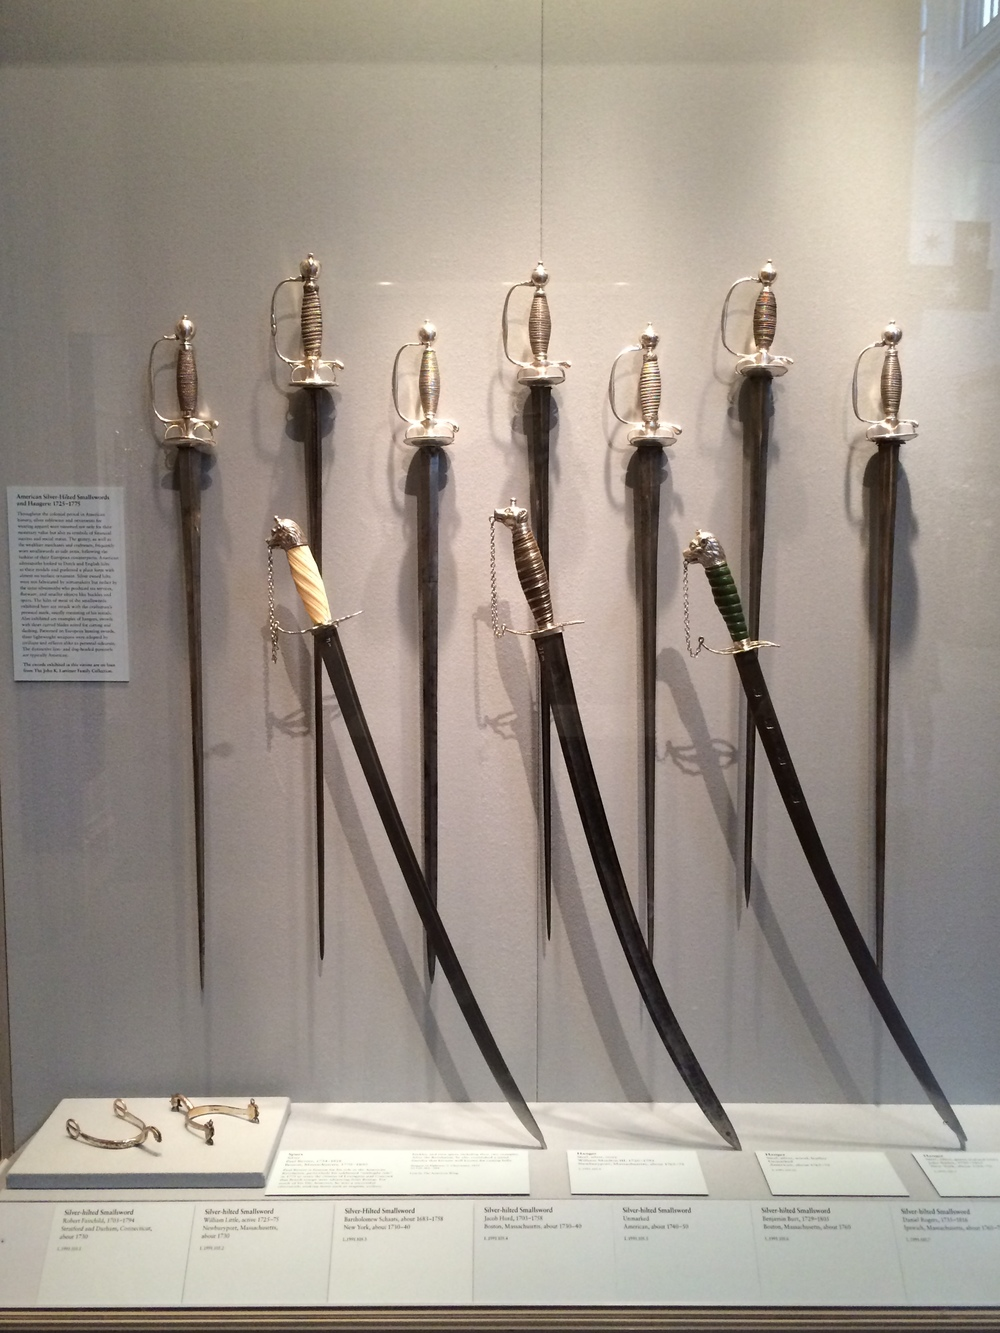 Paul Revere's spurs, three hangers, and seven smallswords, all dating to 18th century colonial America.